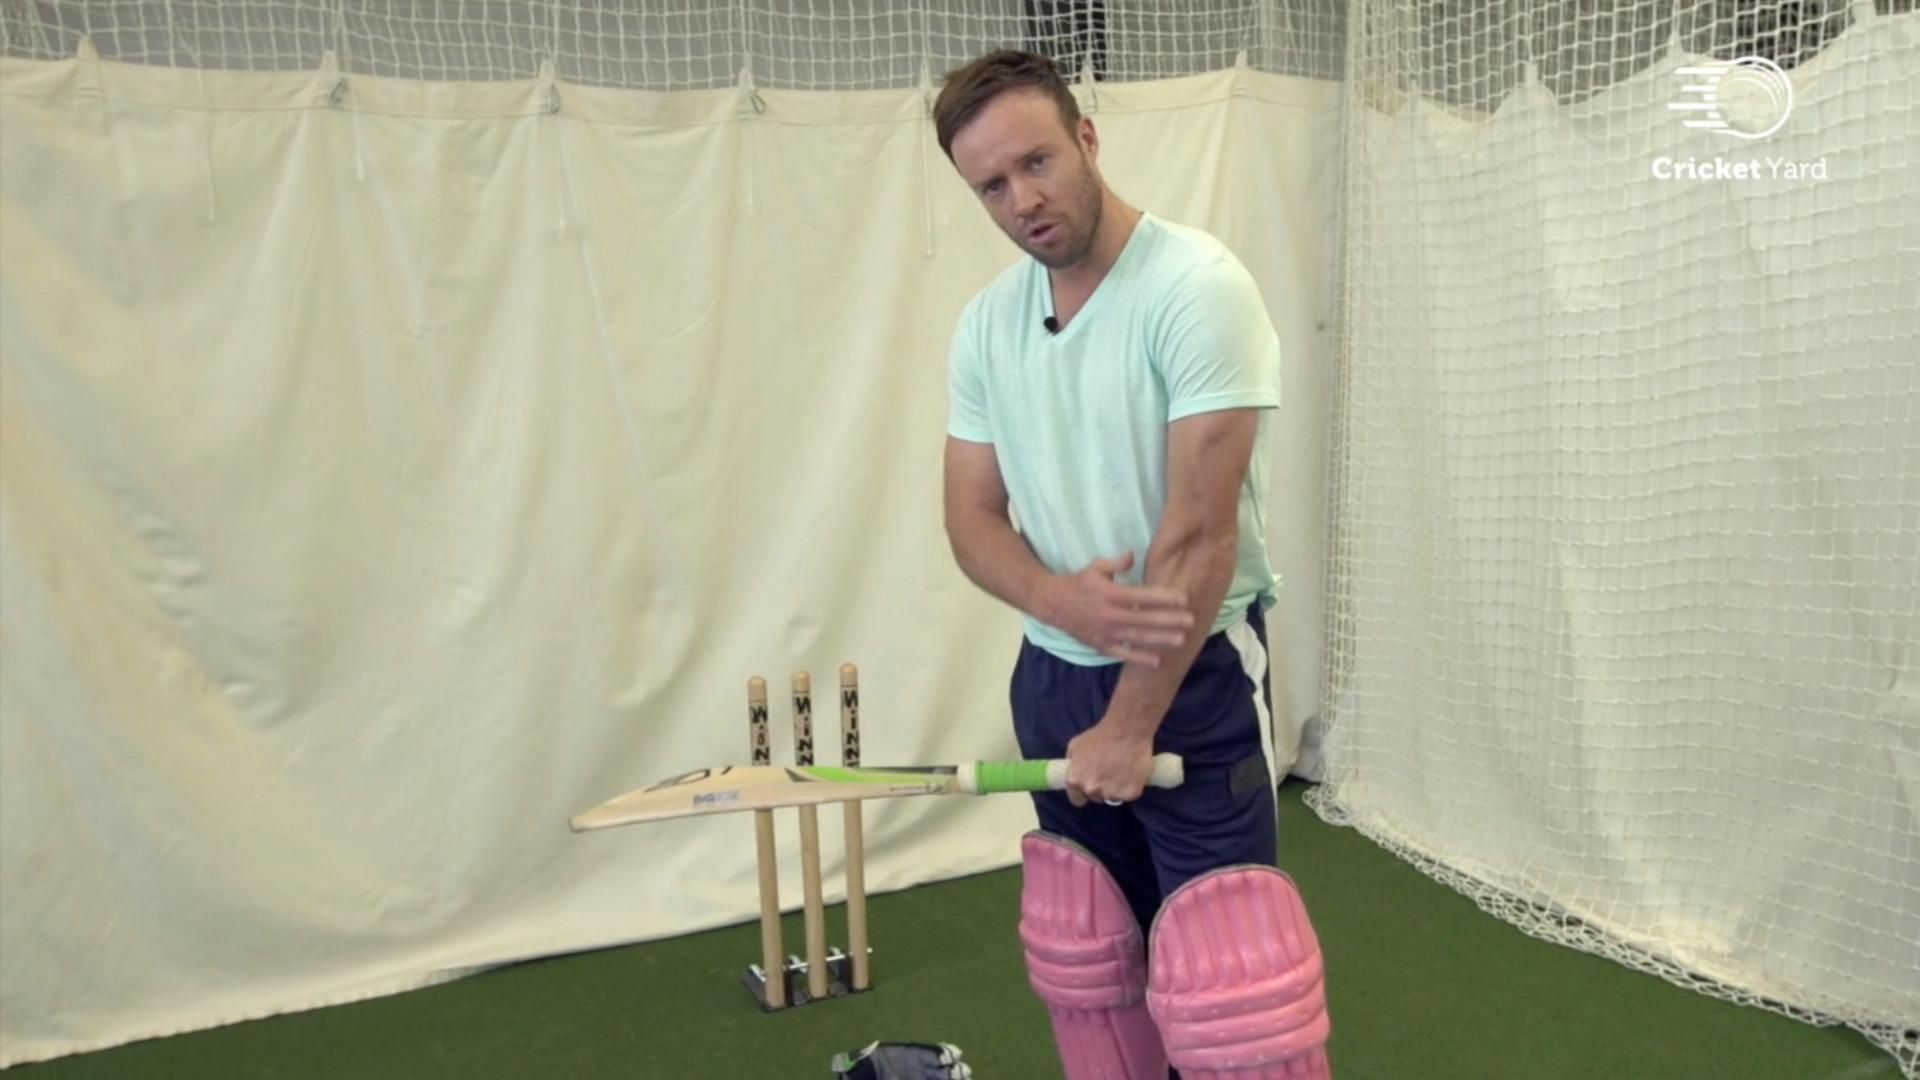 'My grip is to play 360 degrees' - AB de Villiers